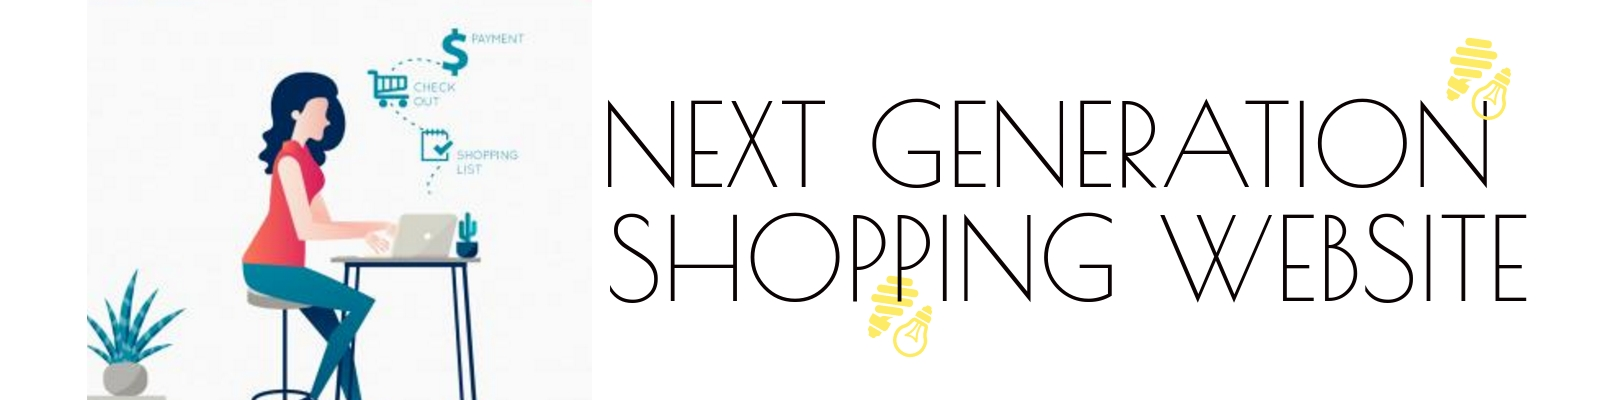 Next Generation Shopping Website